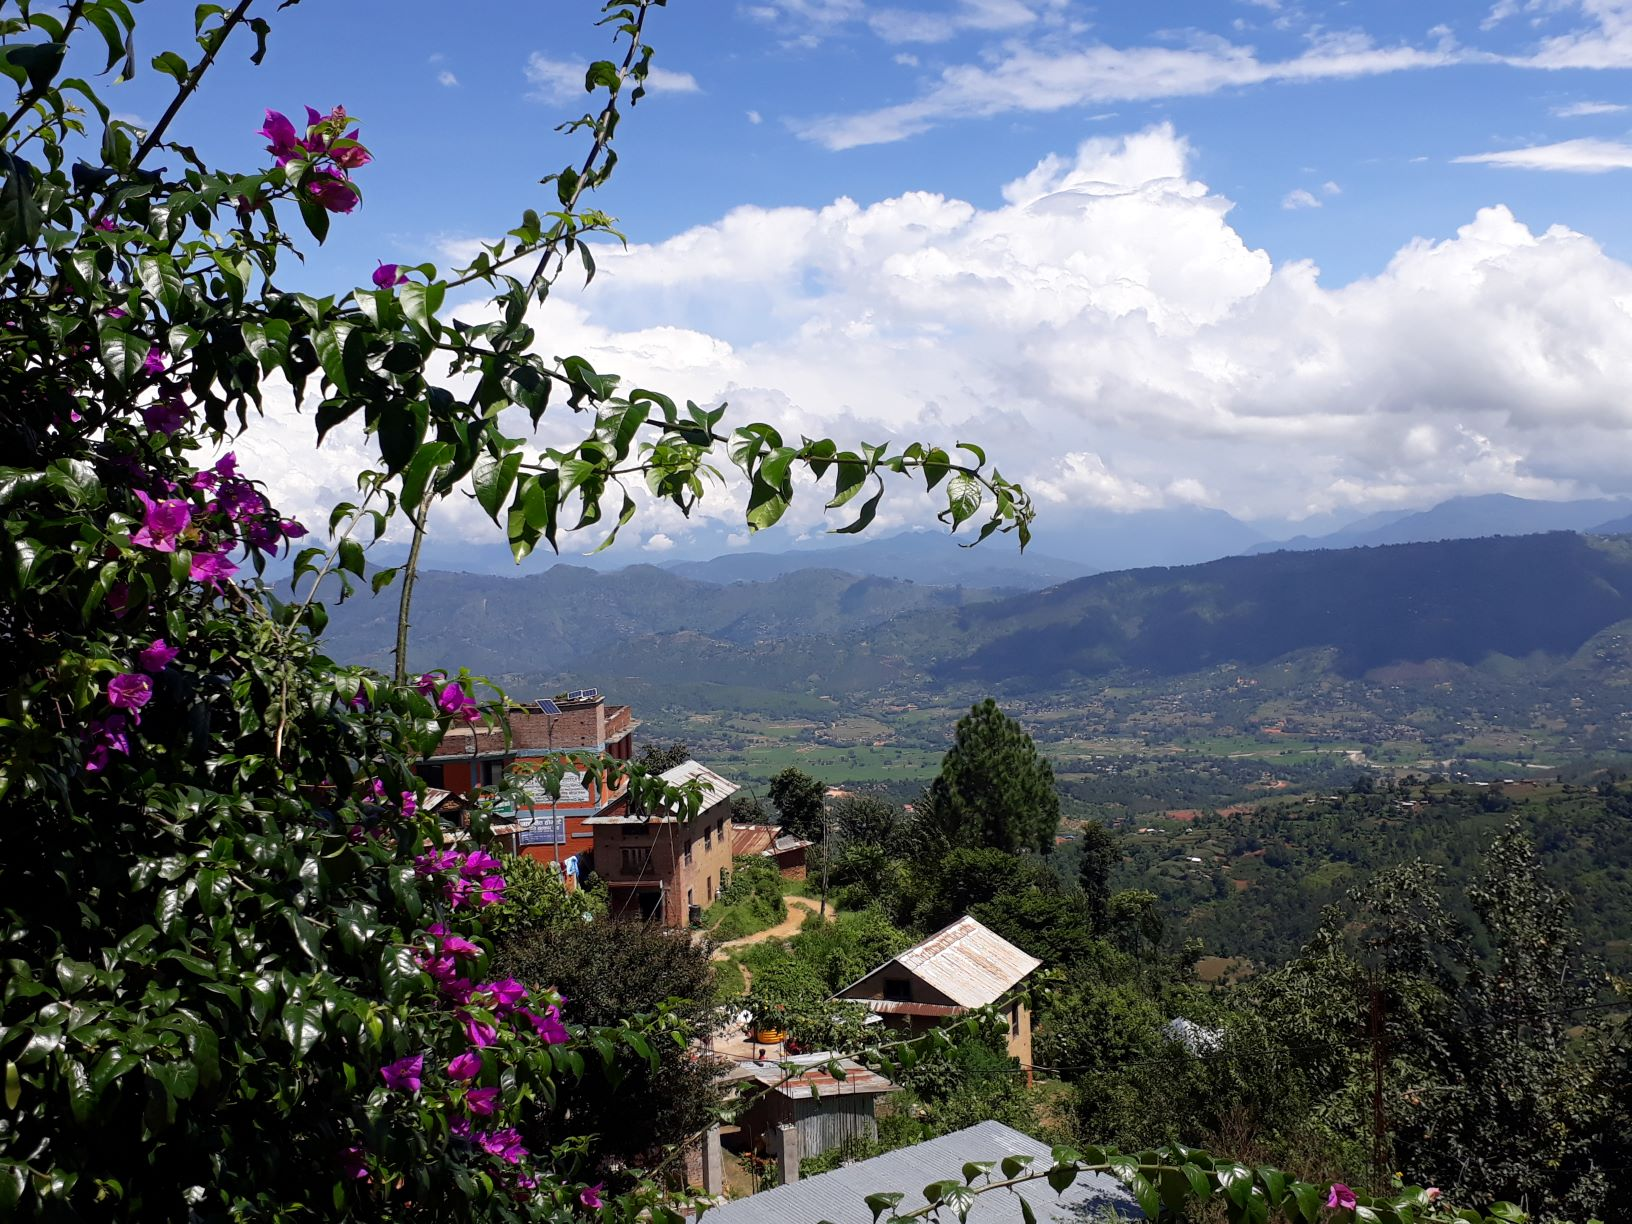 A Homestay in Nepal Changed My Life